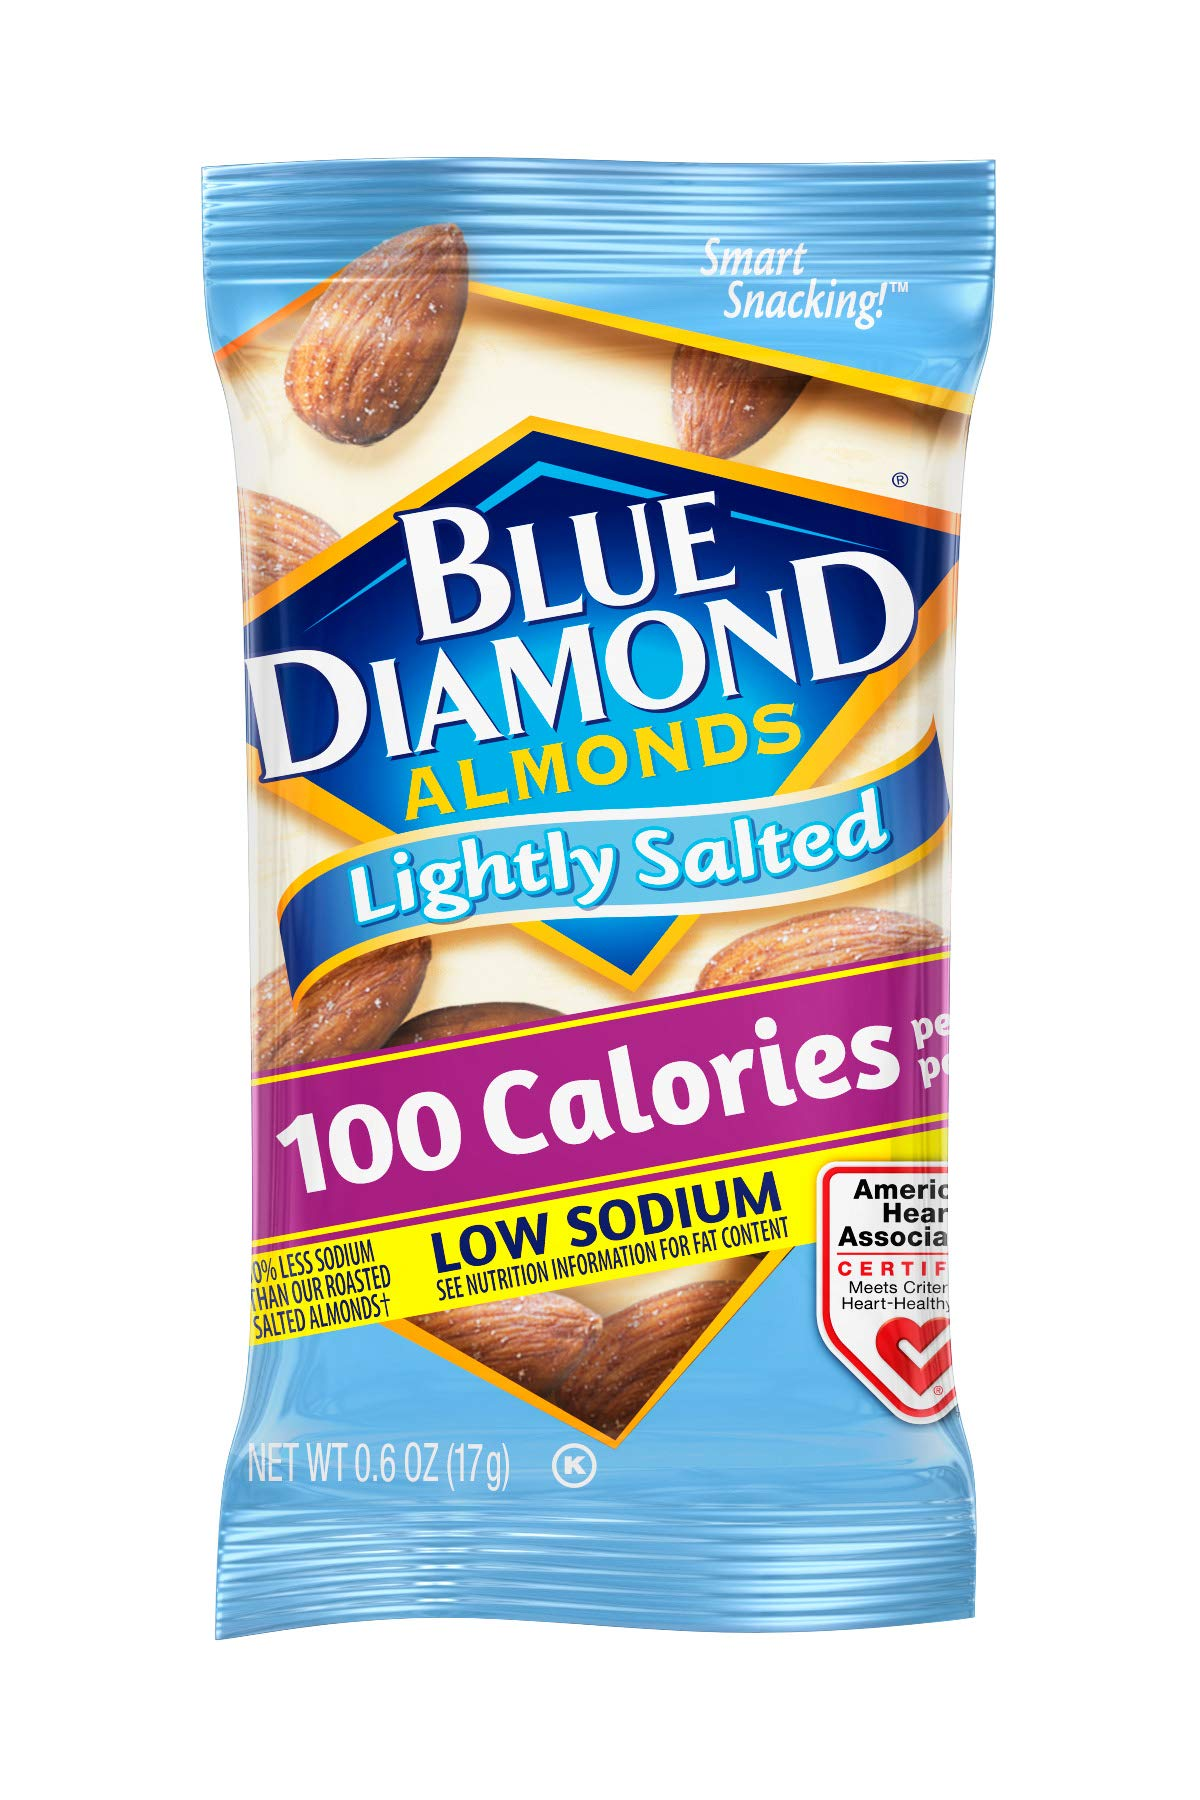 Blue Diamond Almonds On the Go 100 Calorie Packs, Lightly Salted, 12 Count by Blue Diamond Almonds (Image #4)